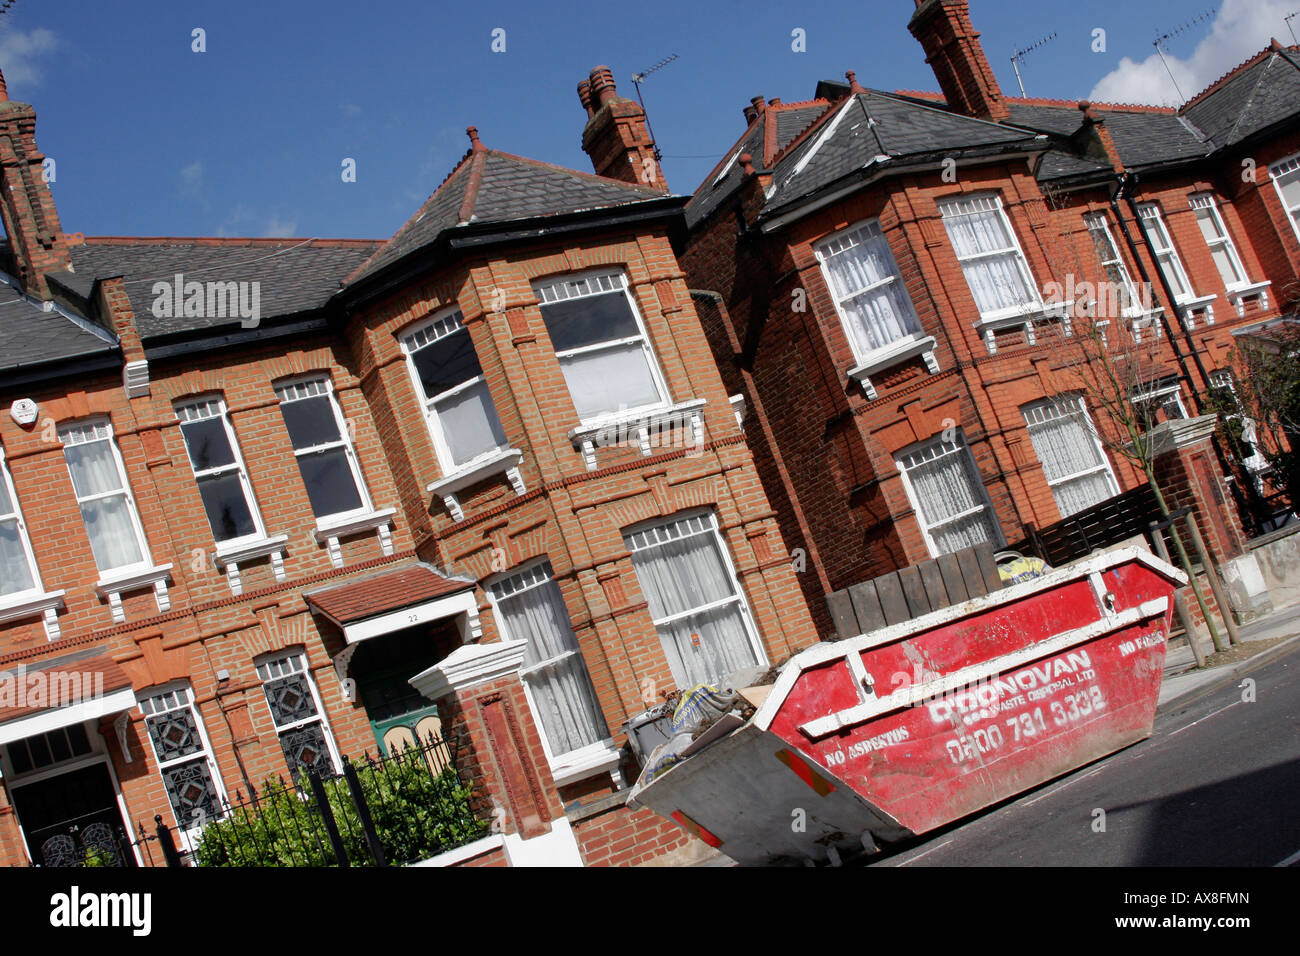 Skip outside a house in Willesden Green, North West London - Stock Image